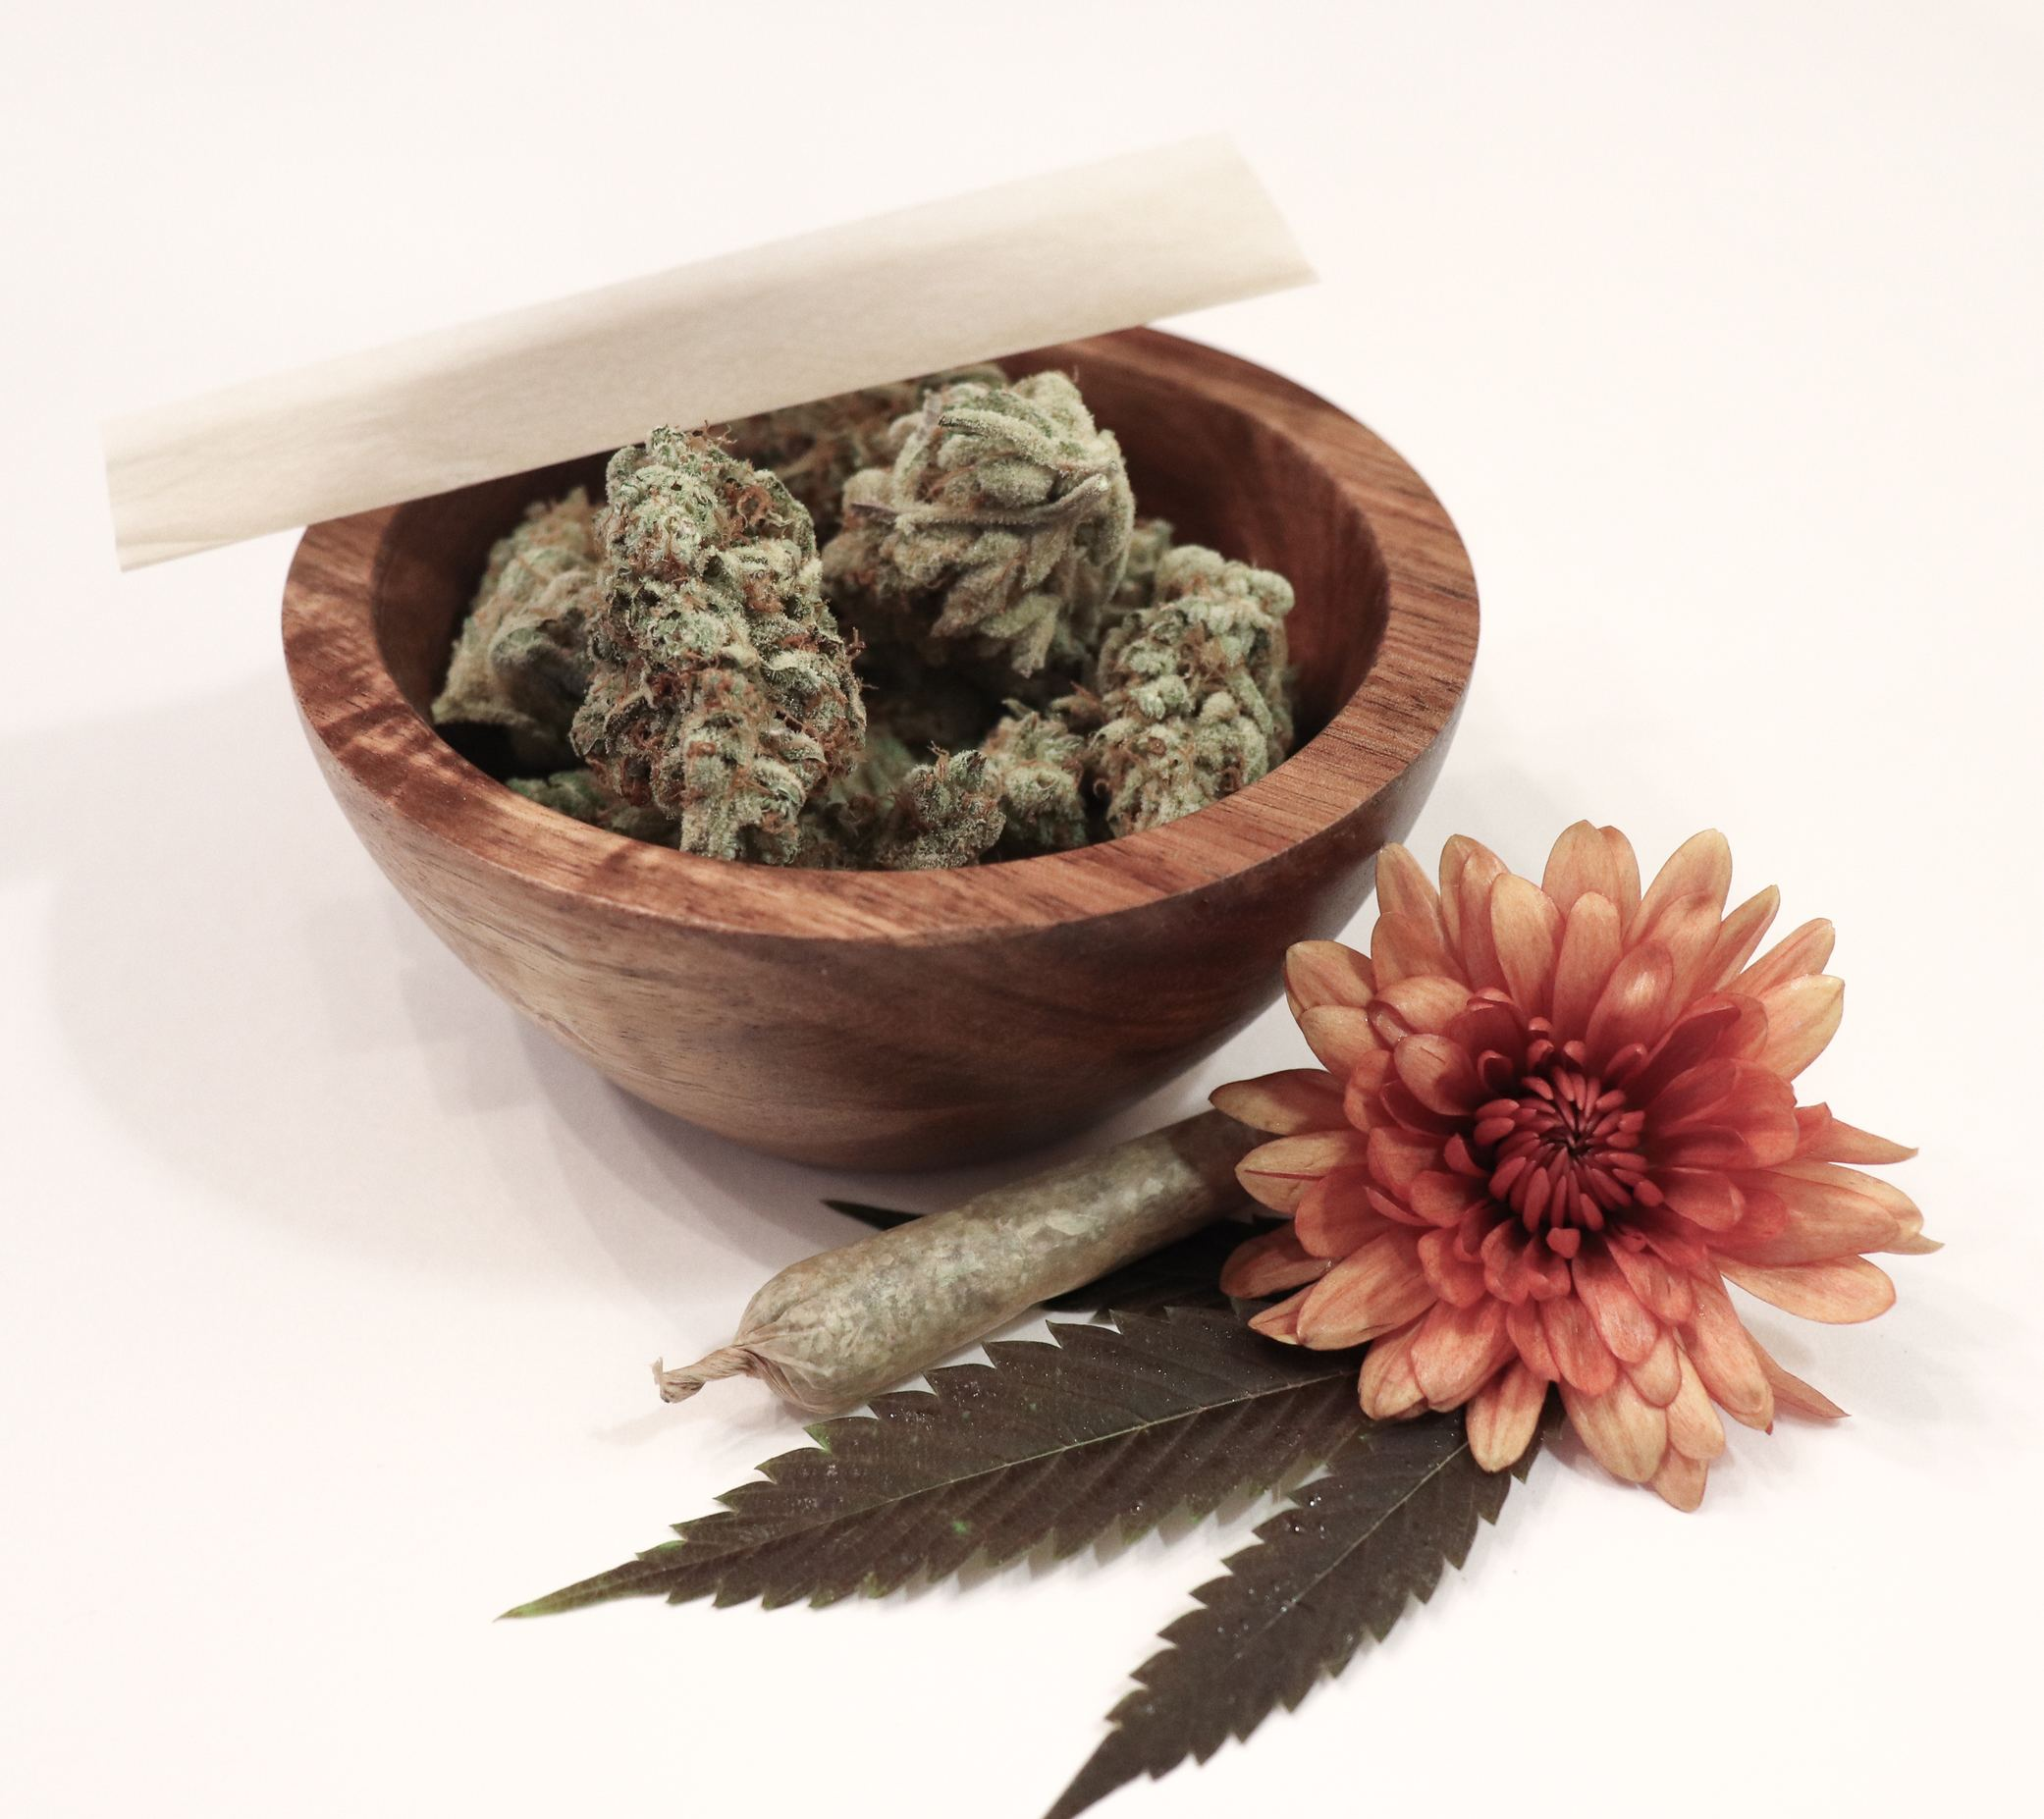 Terpenes occur in cannabis and flower petals